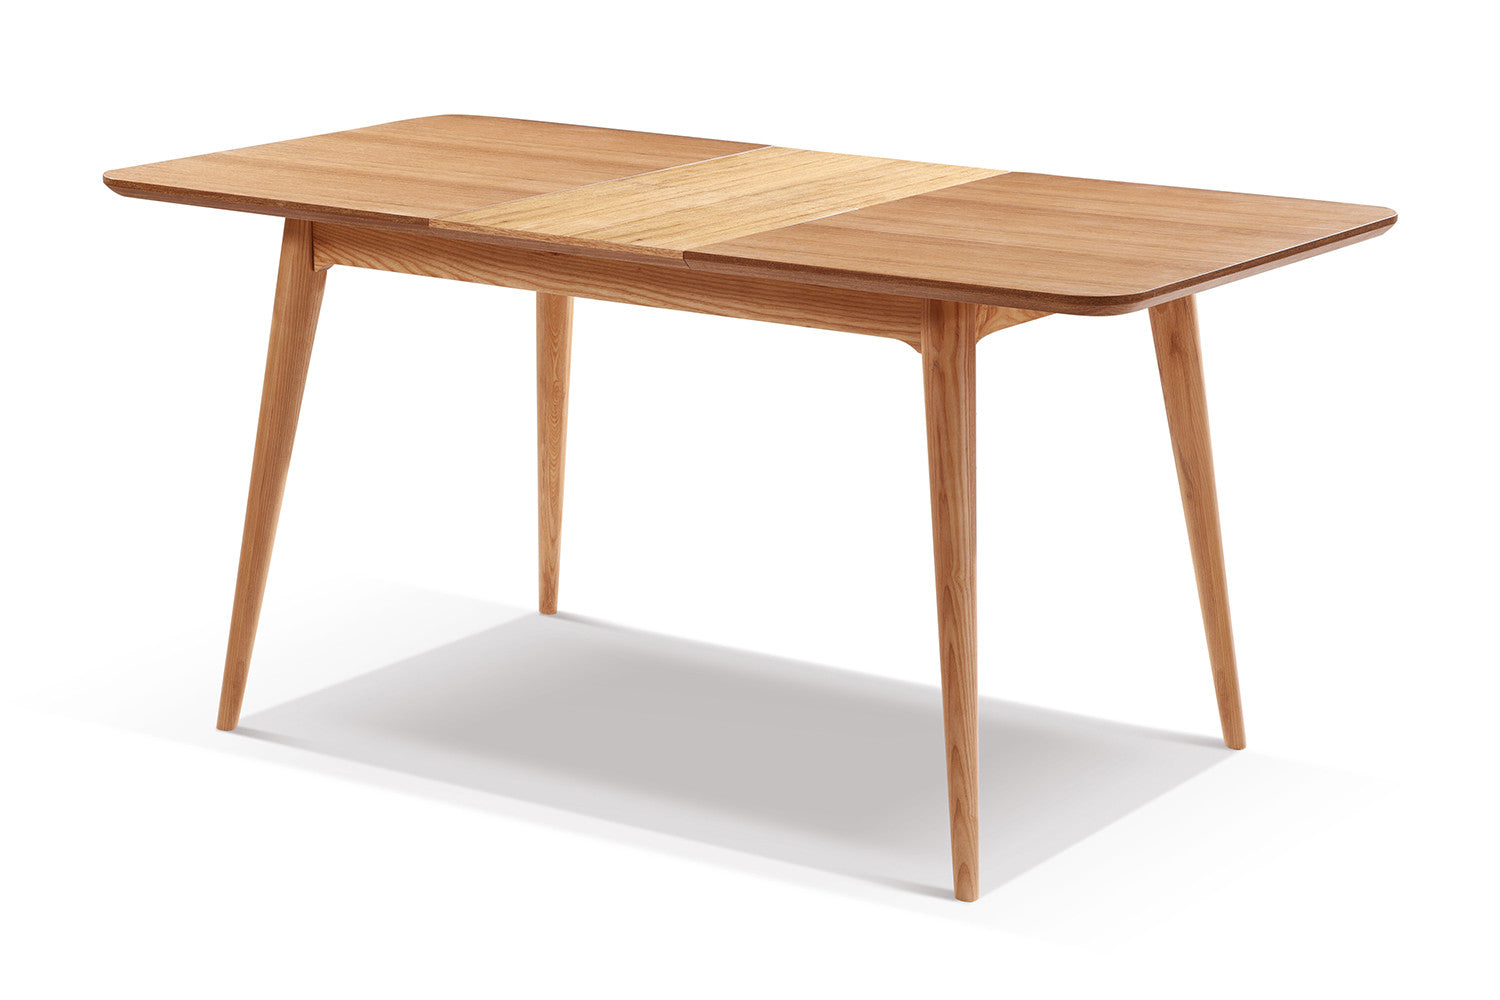 Table de salle manger extensible en bois adda dewarens for Table a manger a rallonge